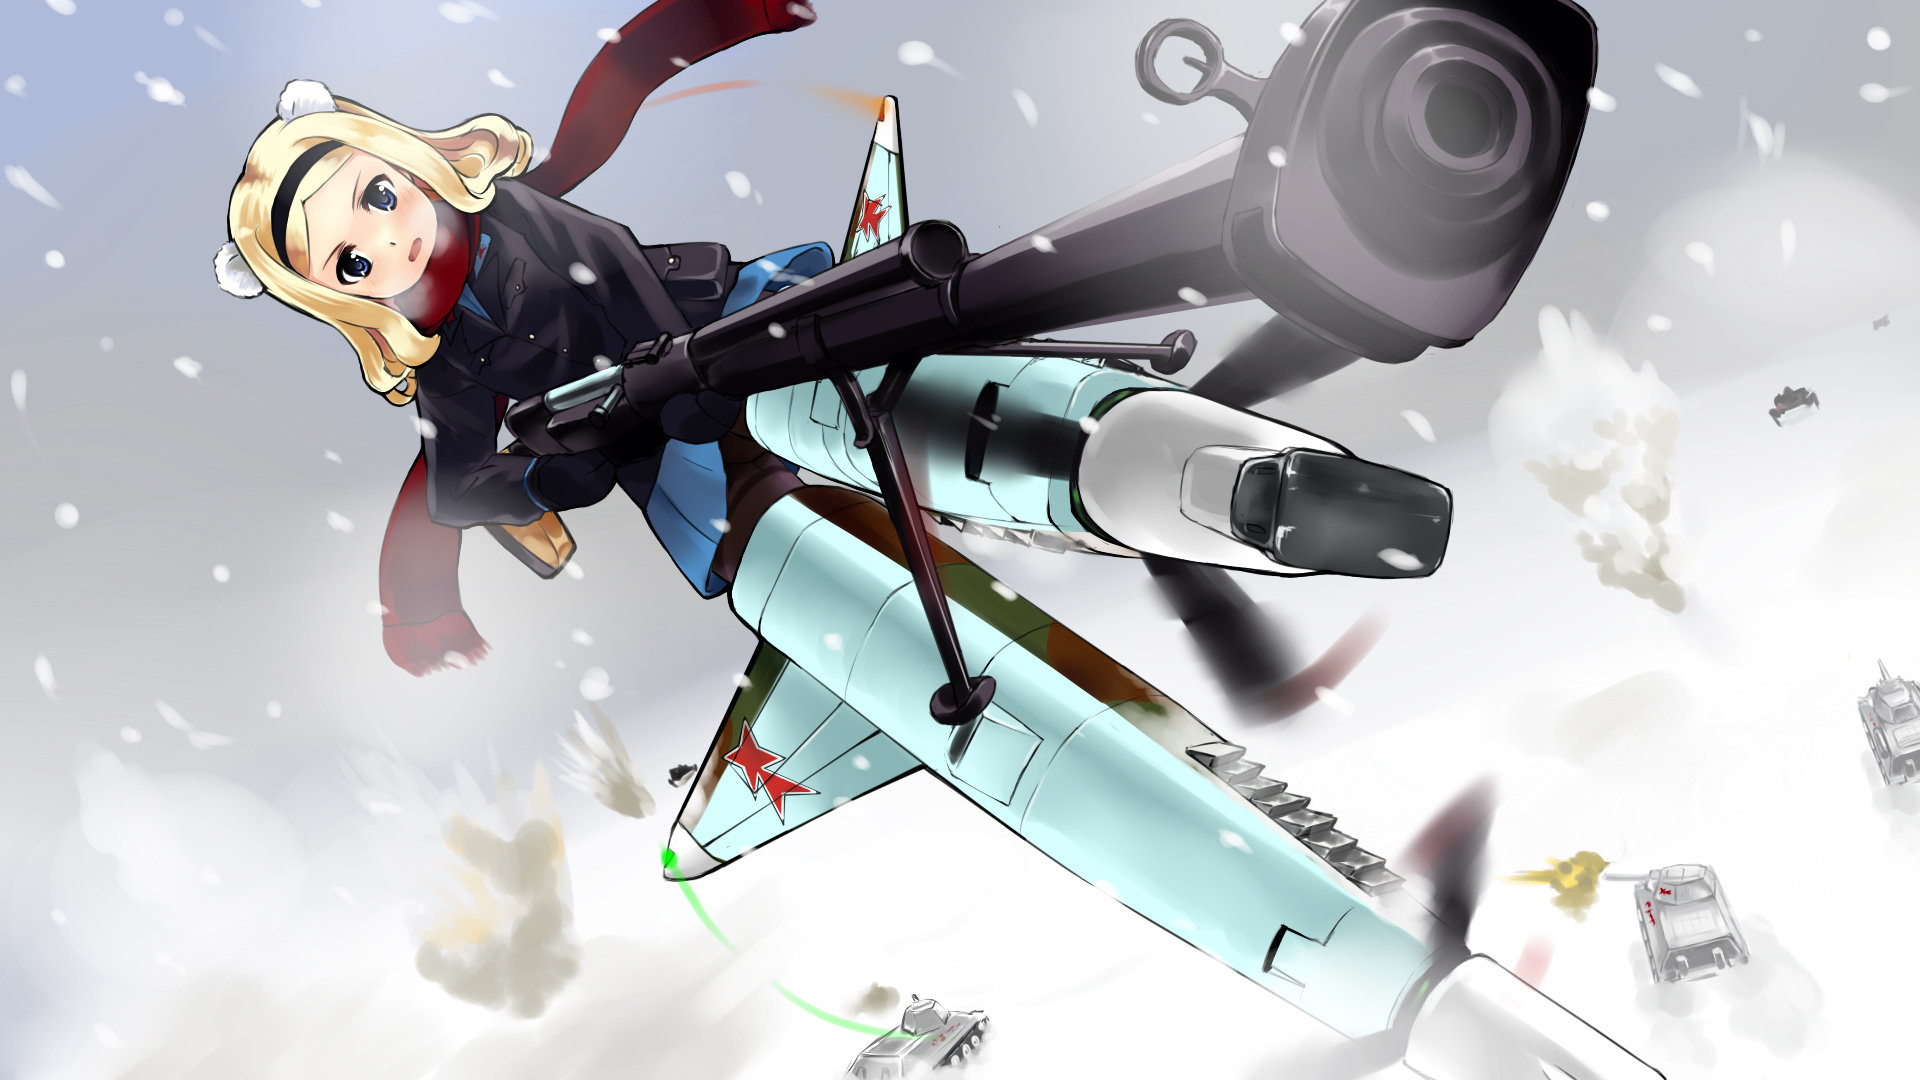 High resolution Strike Witches hd 1920x1080 background ID:305636 for PC